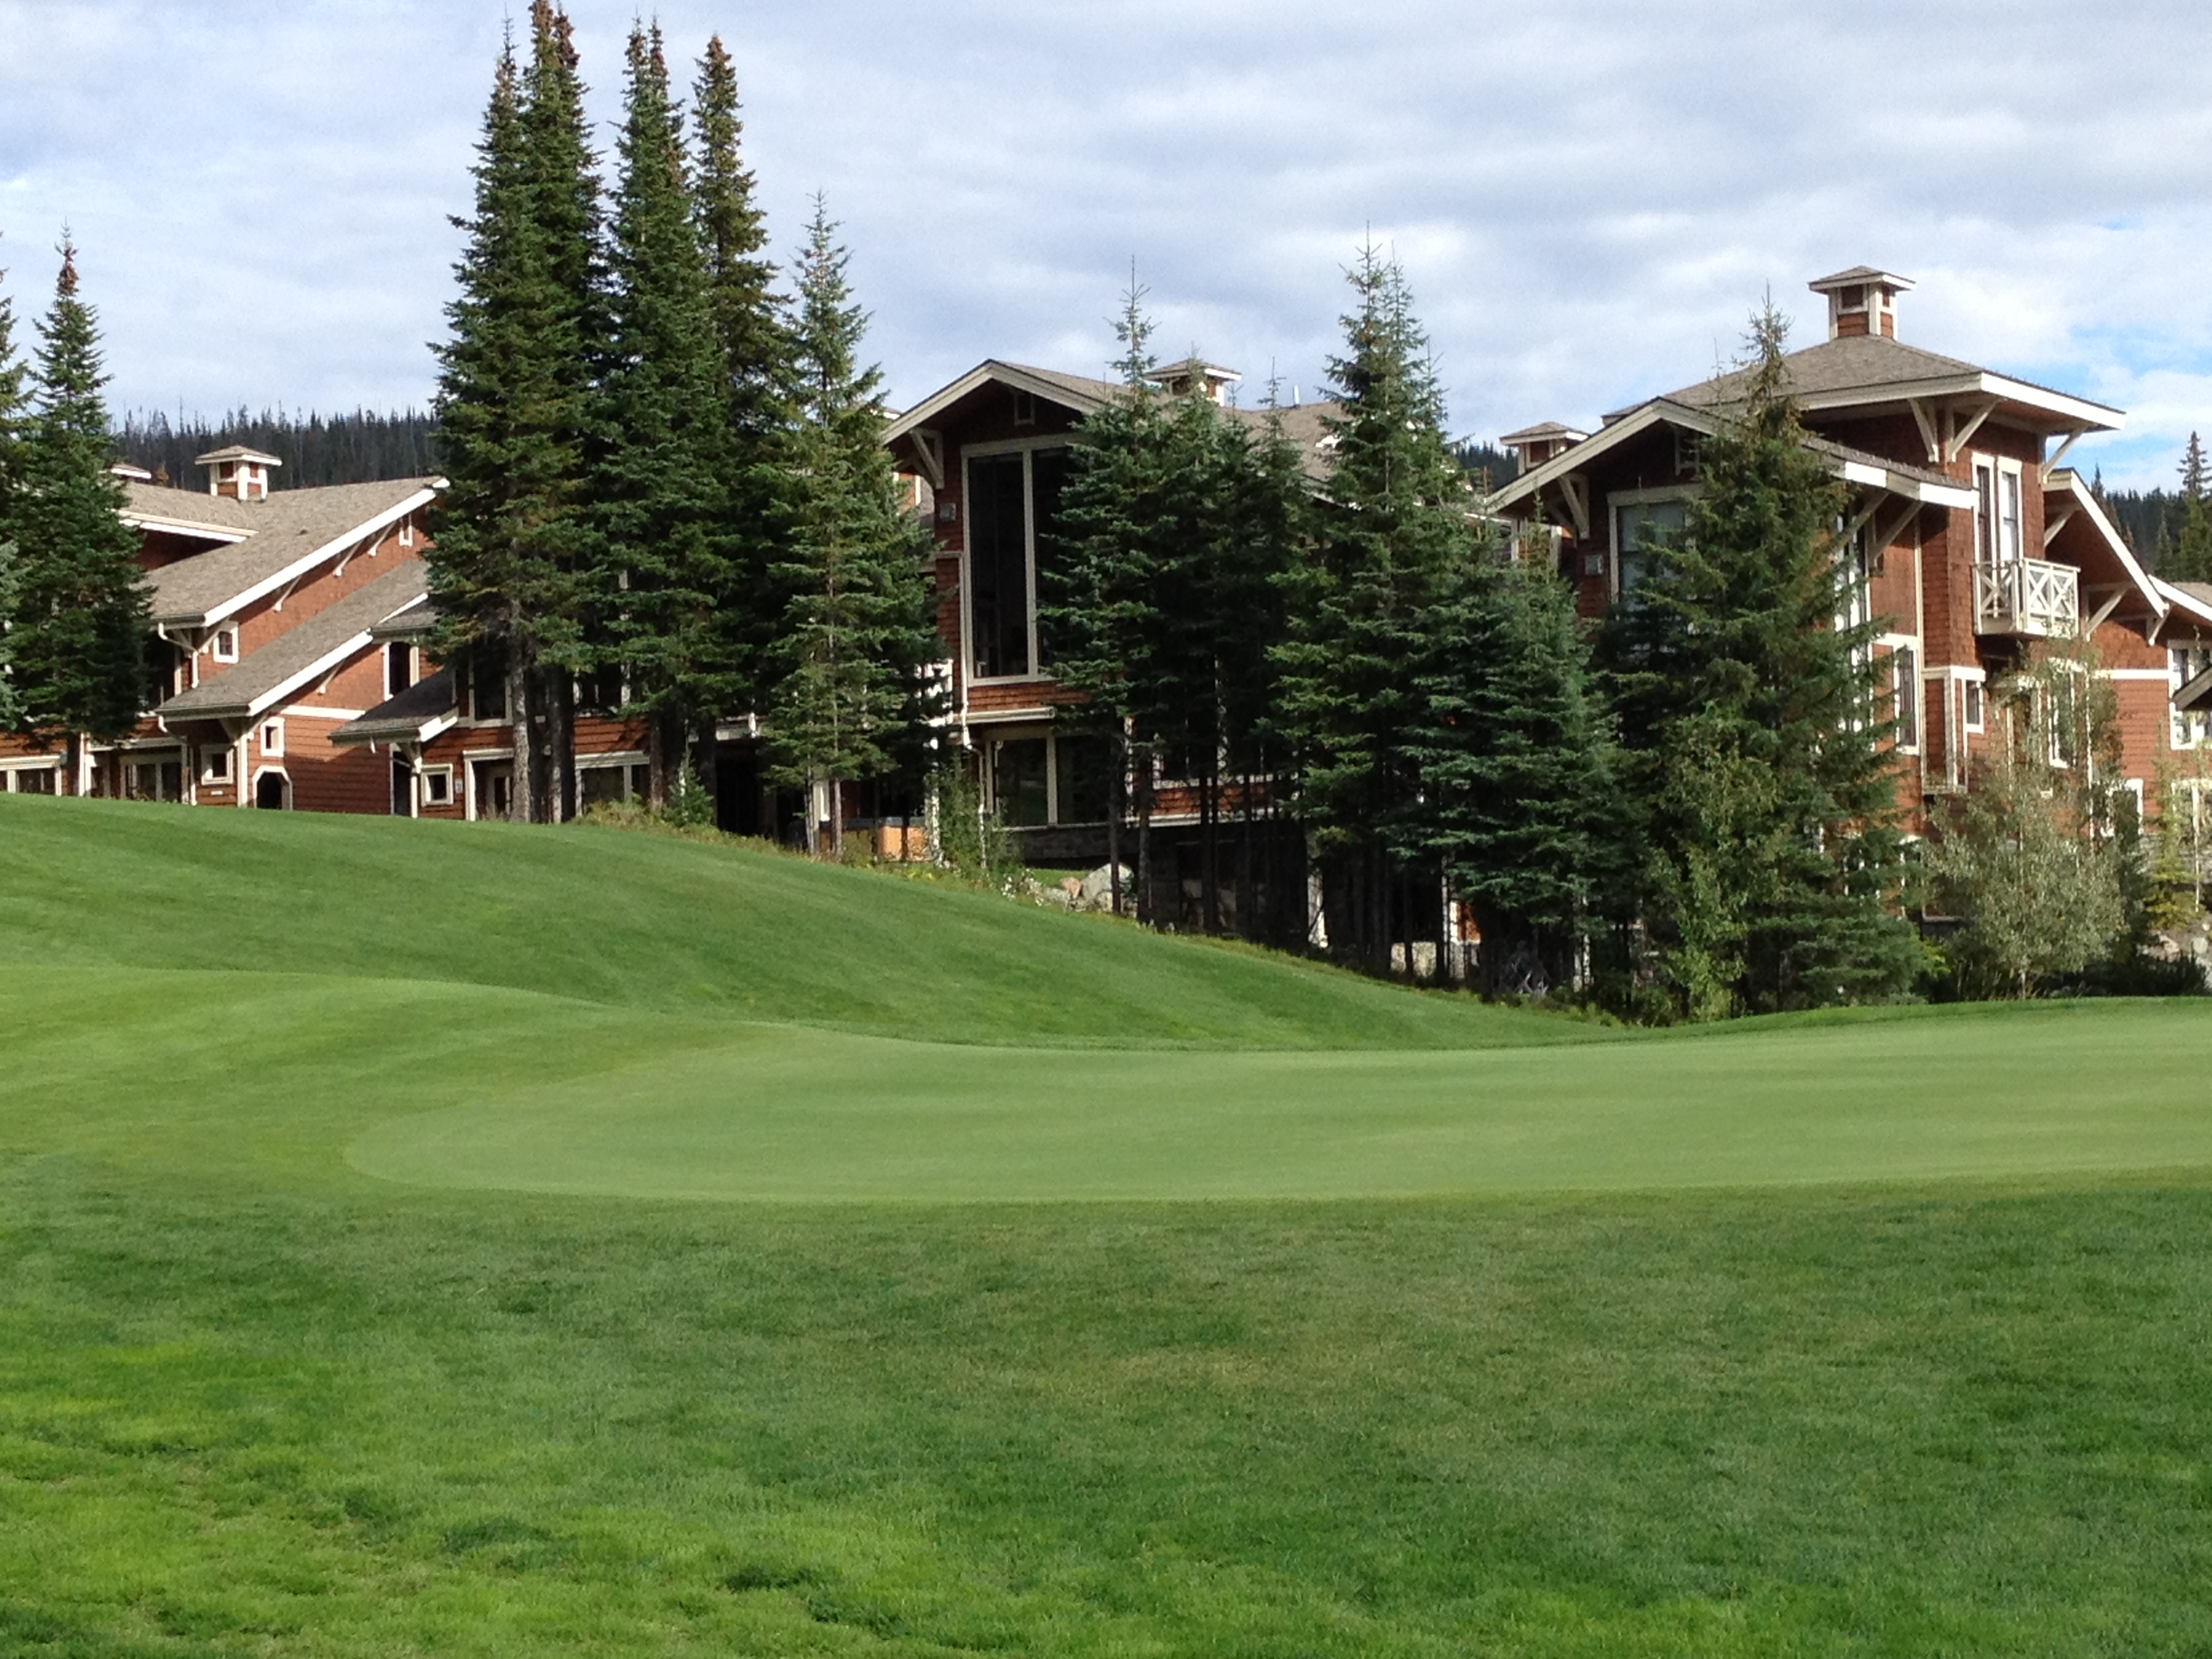 Stone's Throw condo backing onto the 16th Fairway - highest elevation tee in BC!